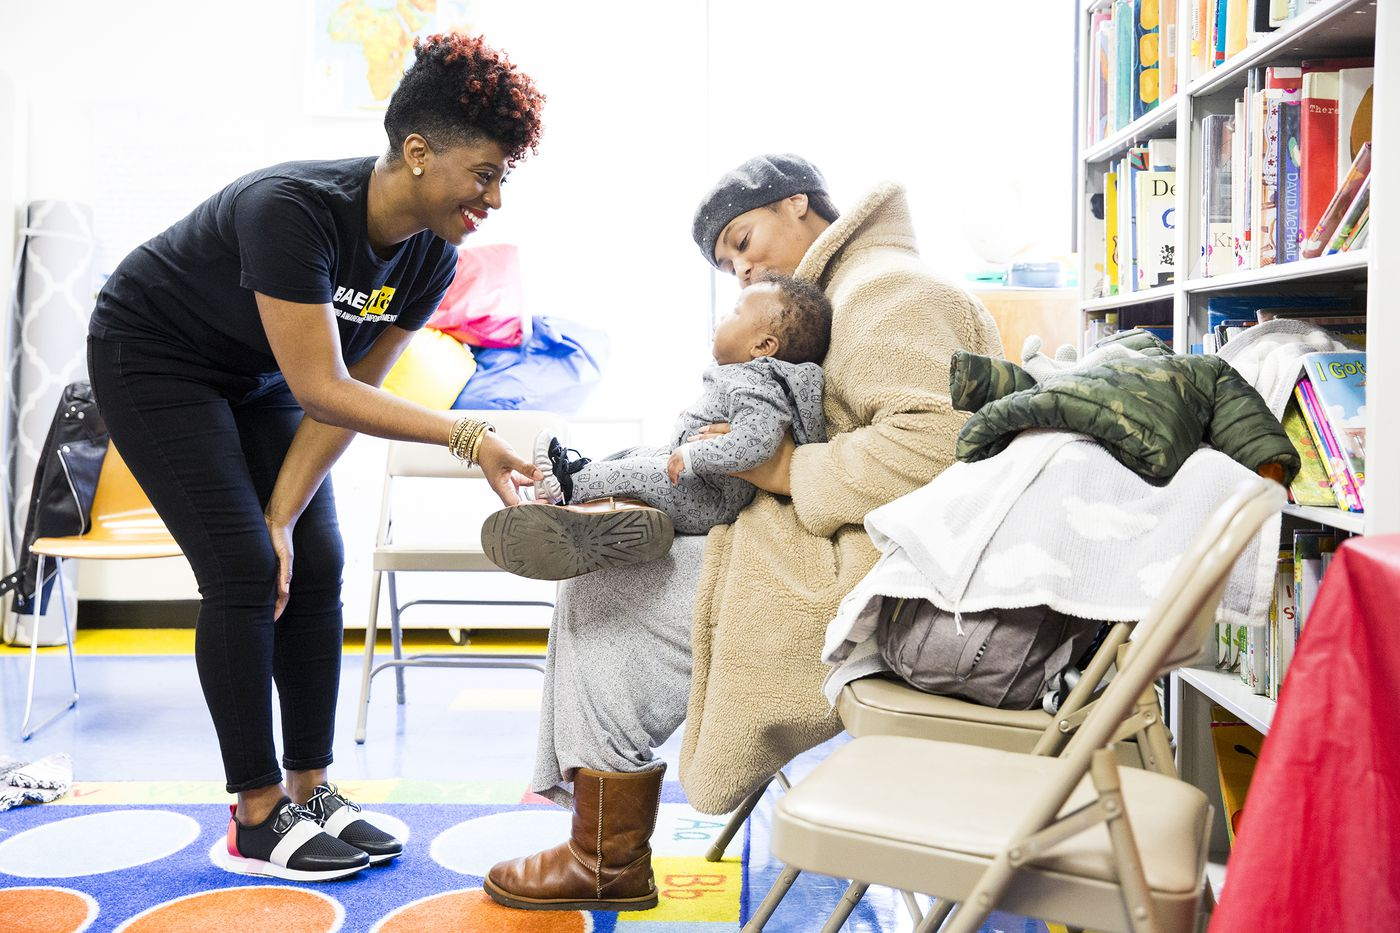 Jabina Coleman (left) is a lactation consultant and co-founder of the nonprofit Perinatal Mental Health Alliance for Women of Color. After experiencing postpartum depression herself, Coleman makes it a point to bring up the topic with new moms.